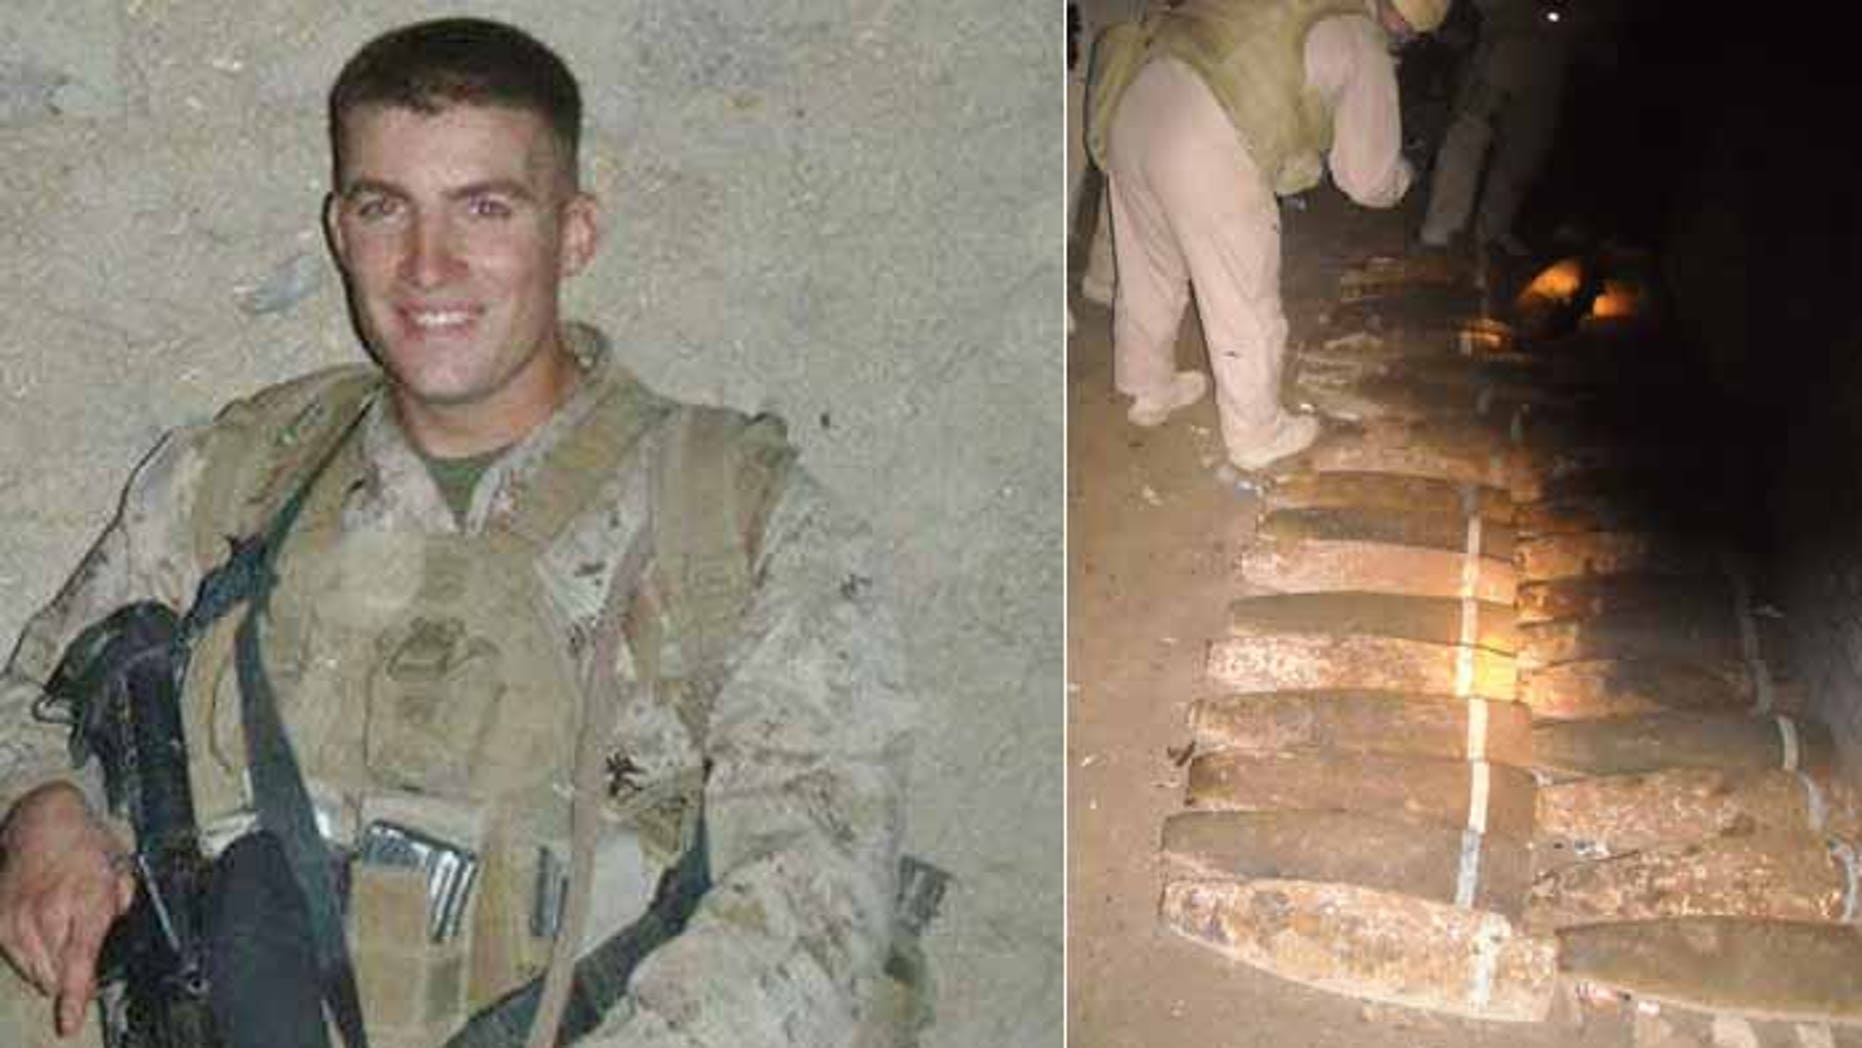 Former Marine Joshua Hartley believes a secret bunker in Iraq held chemical and biological weapons told FoxNews.com in October that his platoon found unspent shells that he said contained chemical weapons.